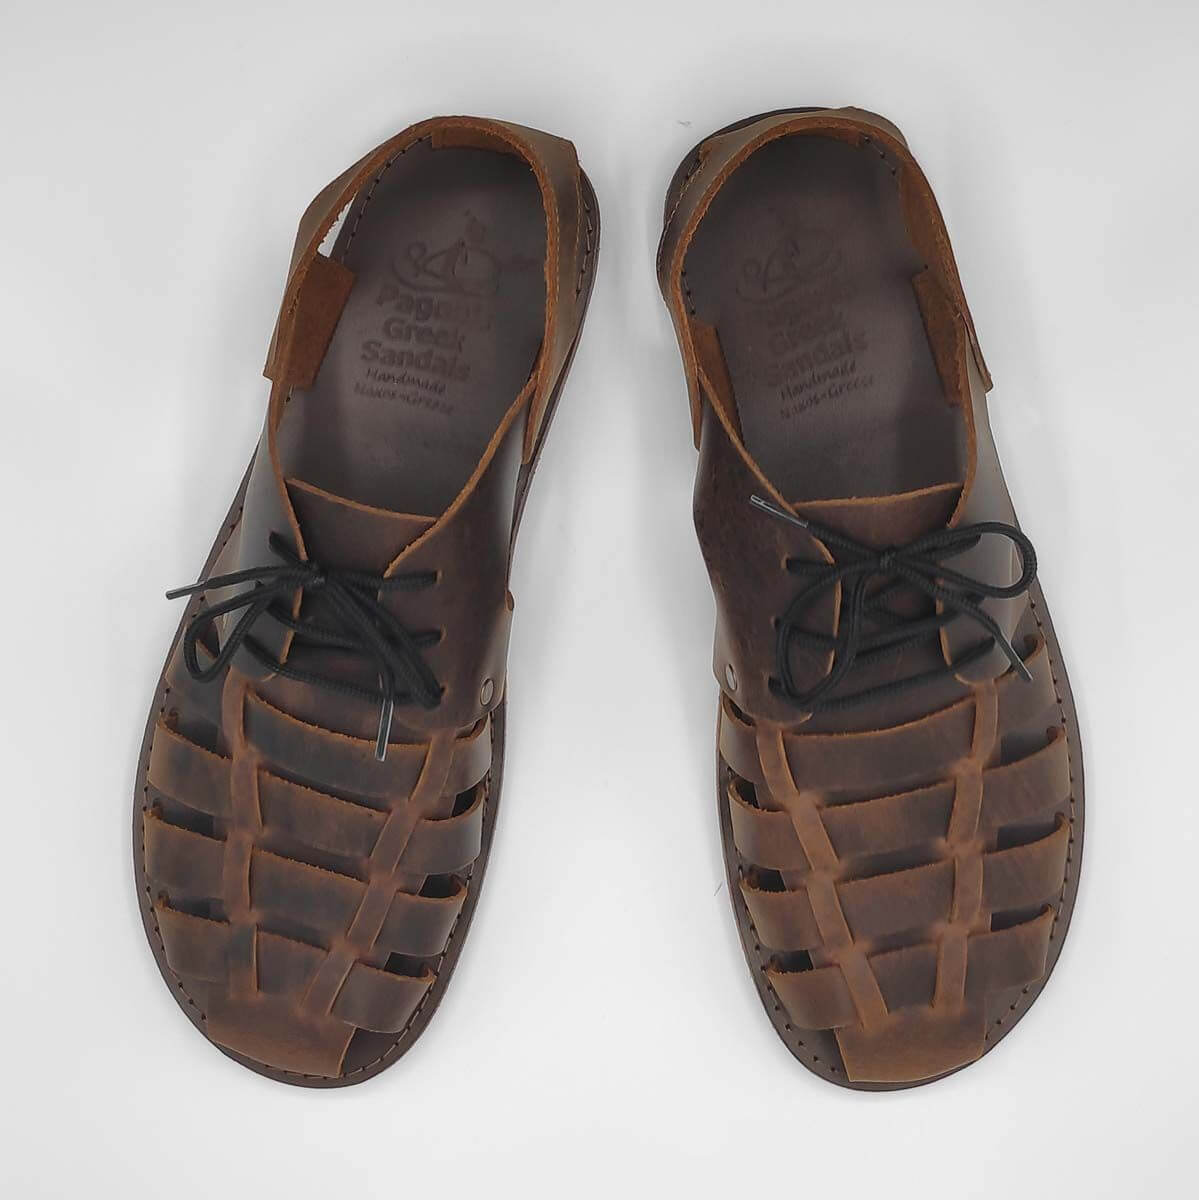 Thalassa Mens leather dress sandals | Pagonis Greek Sandals